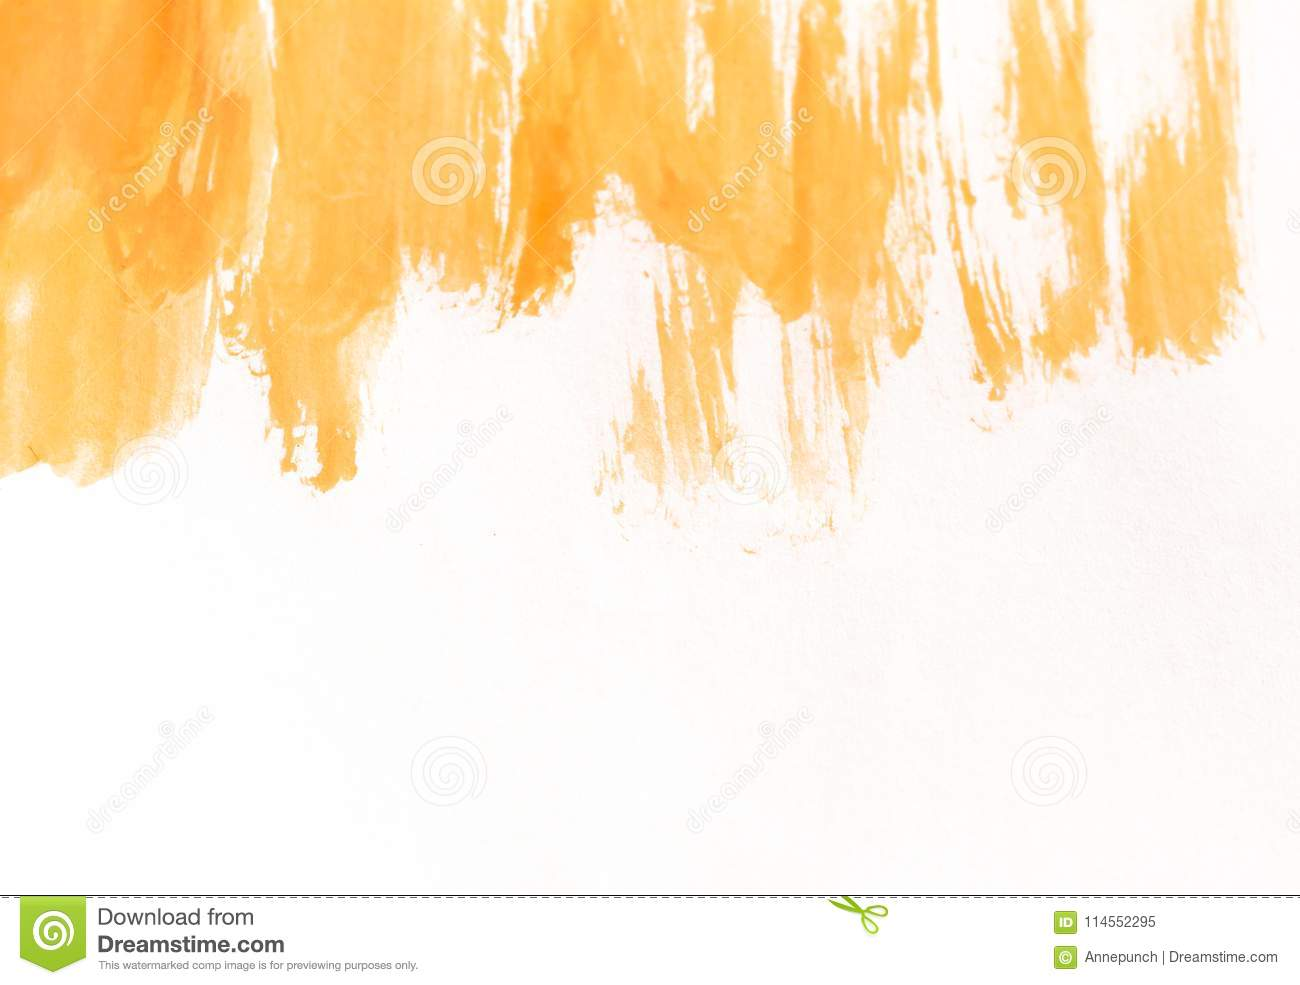 Orange watercolor brush strokes on white paper. Horizontal background with stains of watercolour paint.